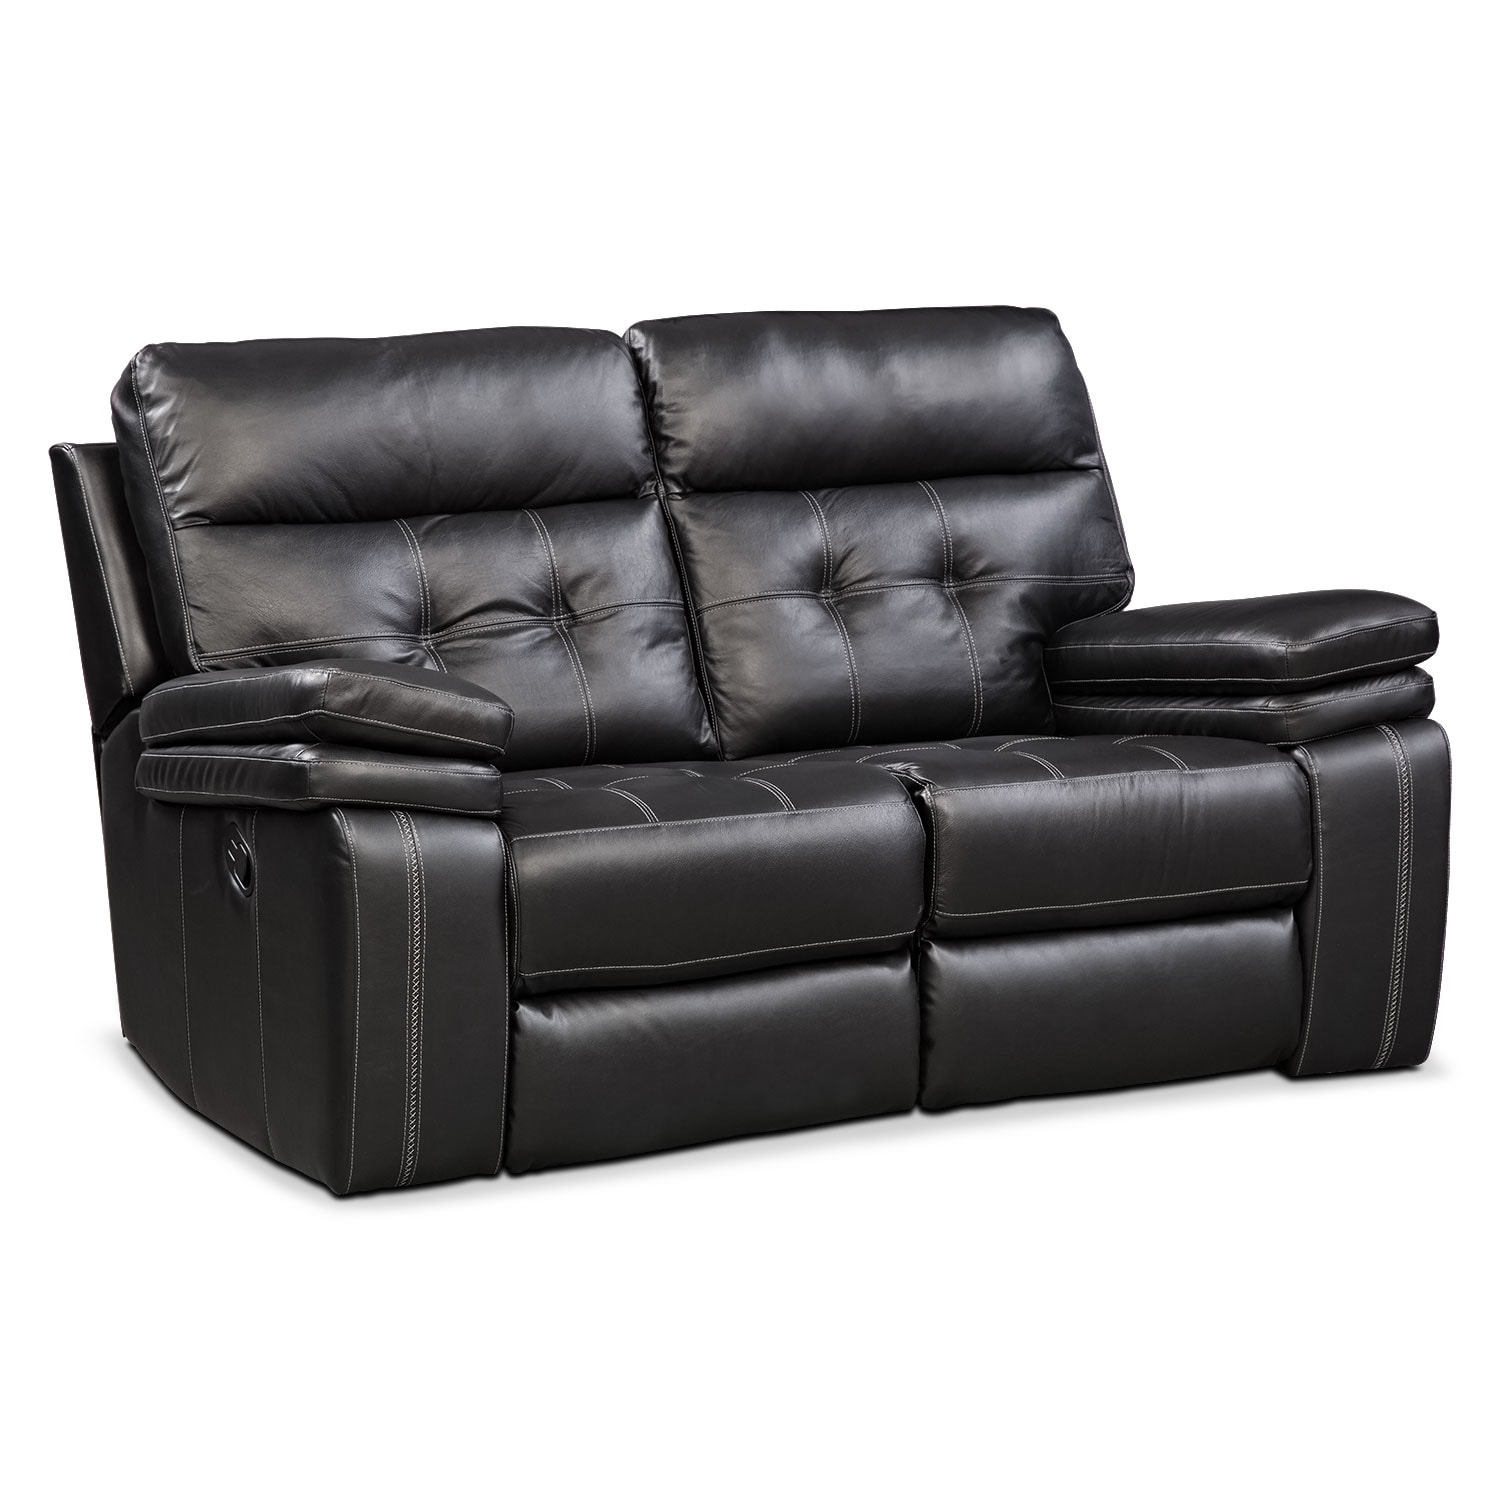 Brisco Manual Reclining Loveseat   Black